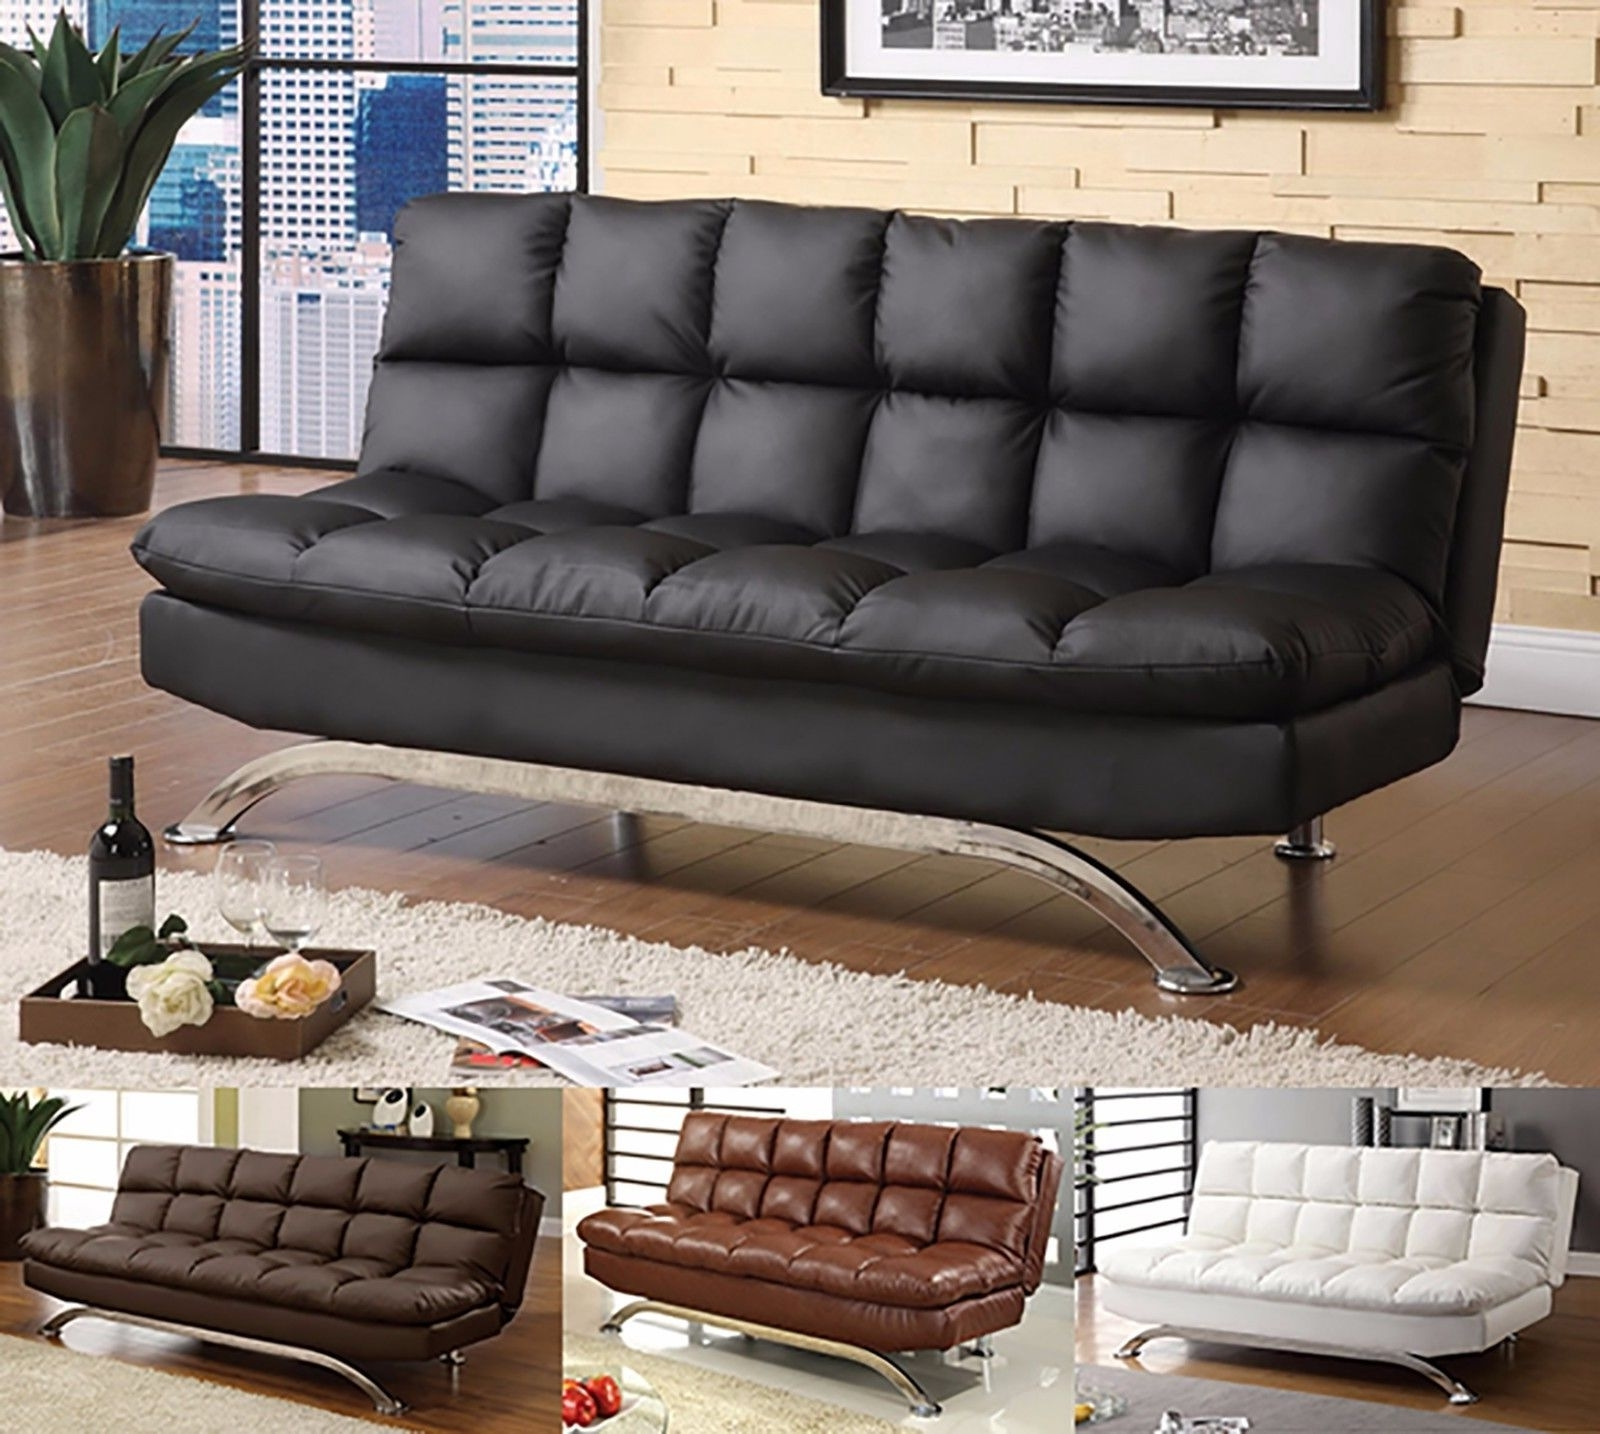 Furniture : Mattress Firm University Fold Out Couch Sleeper In Trendy Tuscaloosa Sectional Sofas (View 3 of 15)